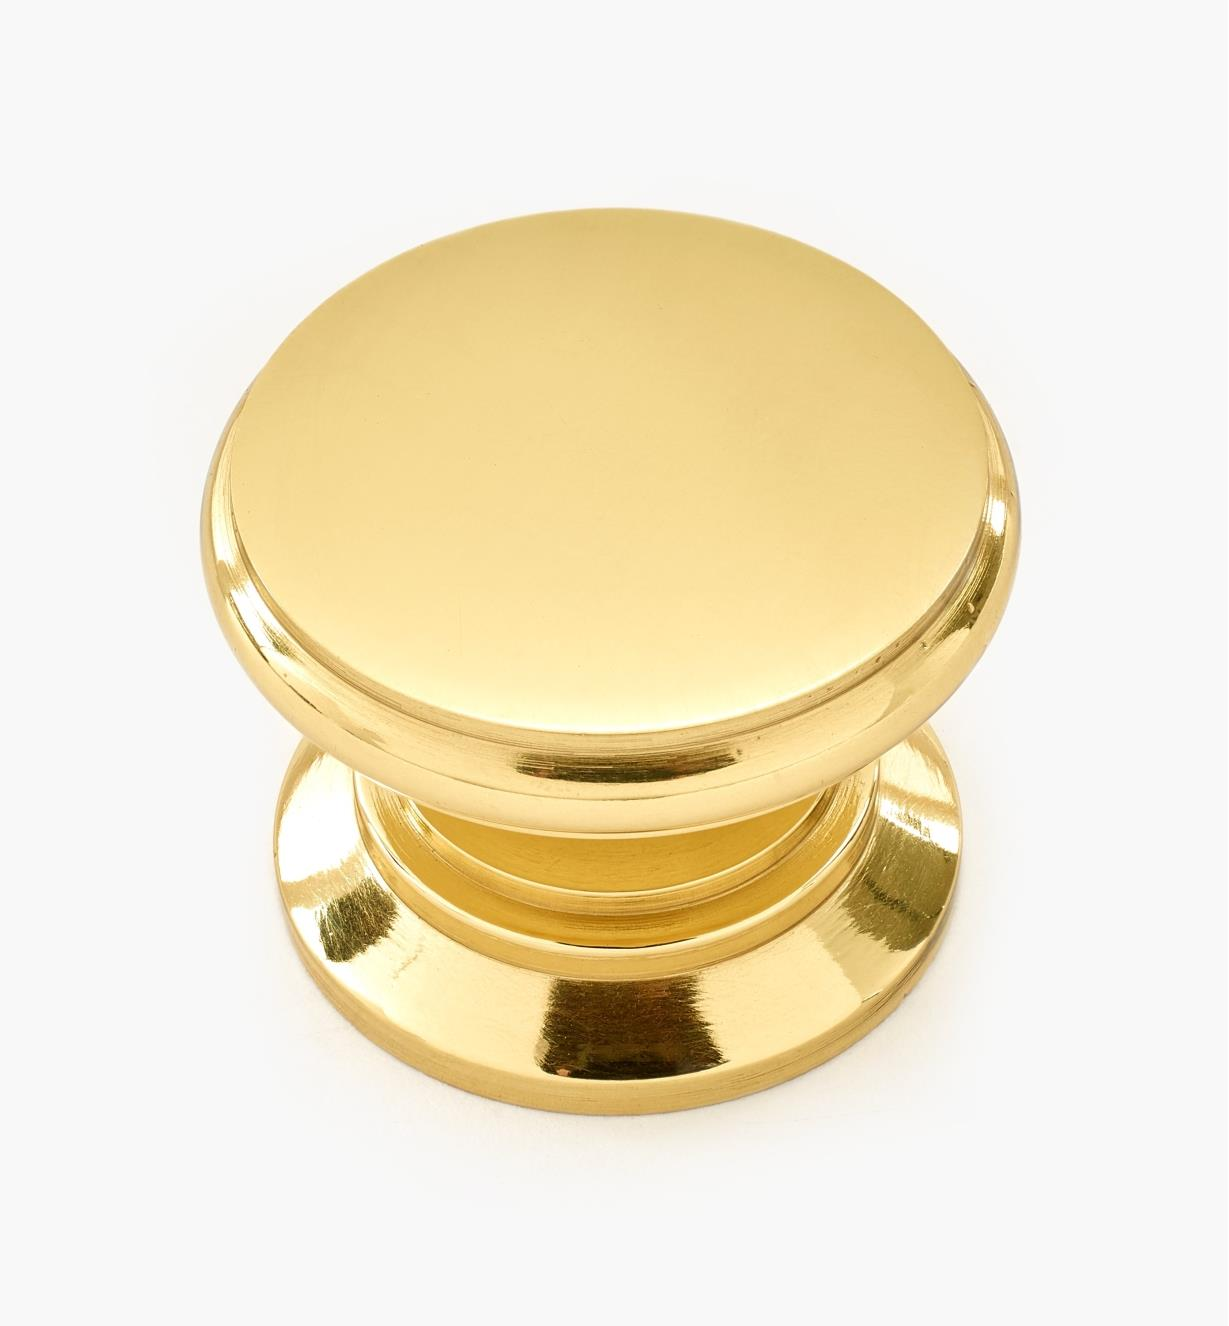 01W1323 - 30mm x 21mm Sm. Brass Knob